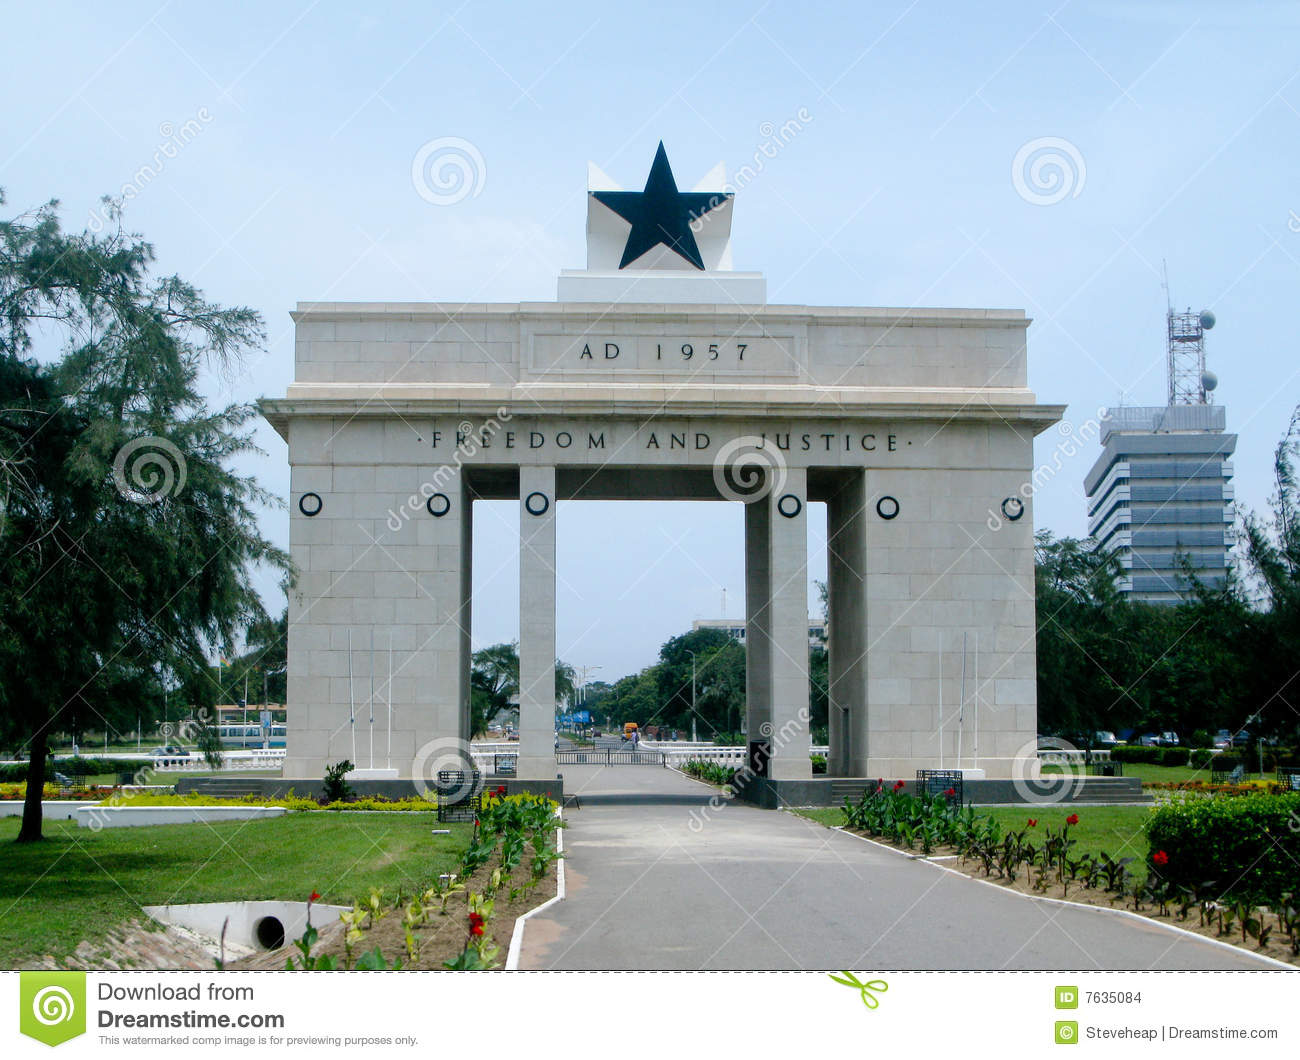 Freedom and Justice Arch in Accra in Ghana